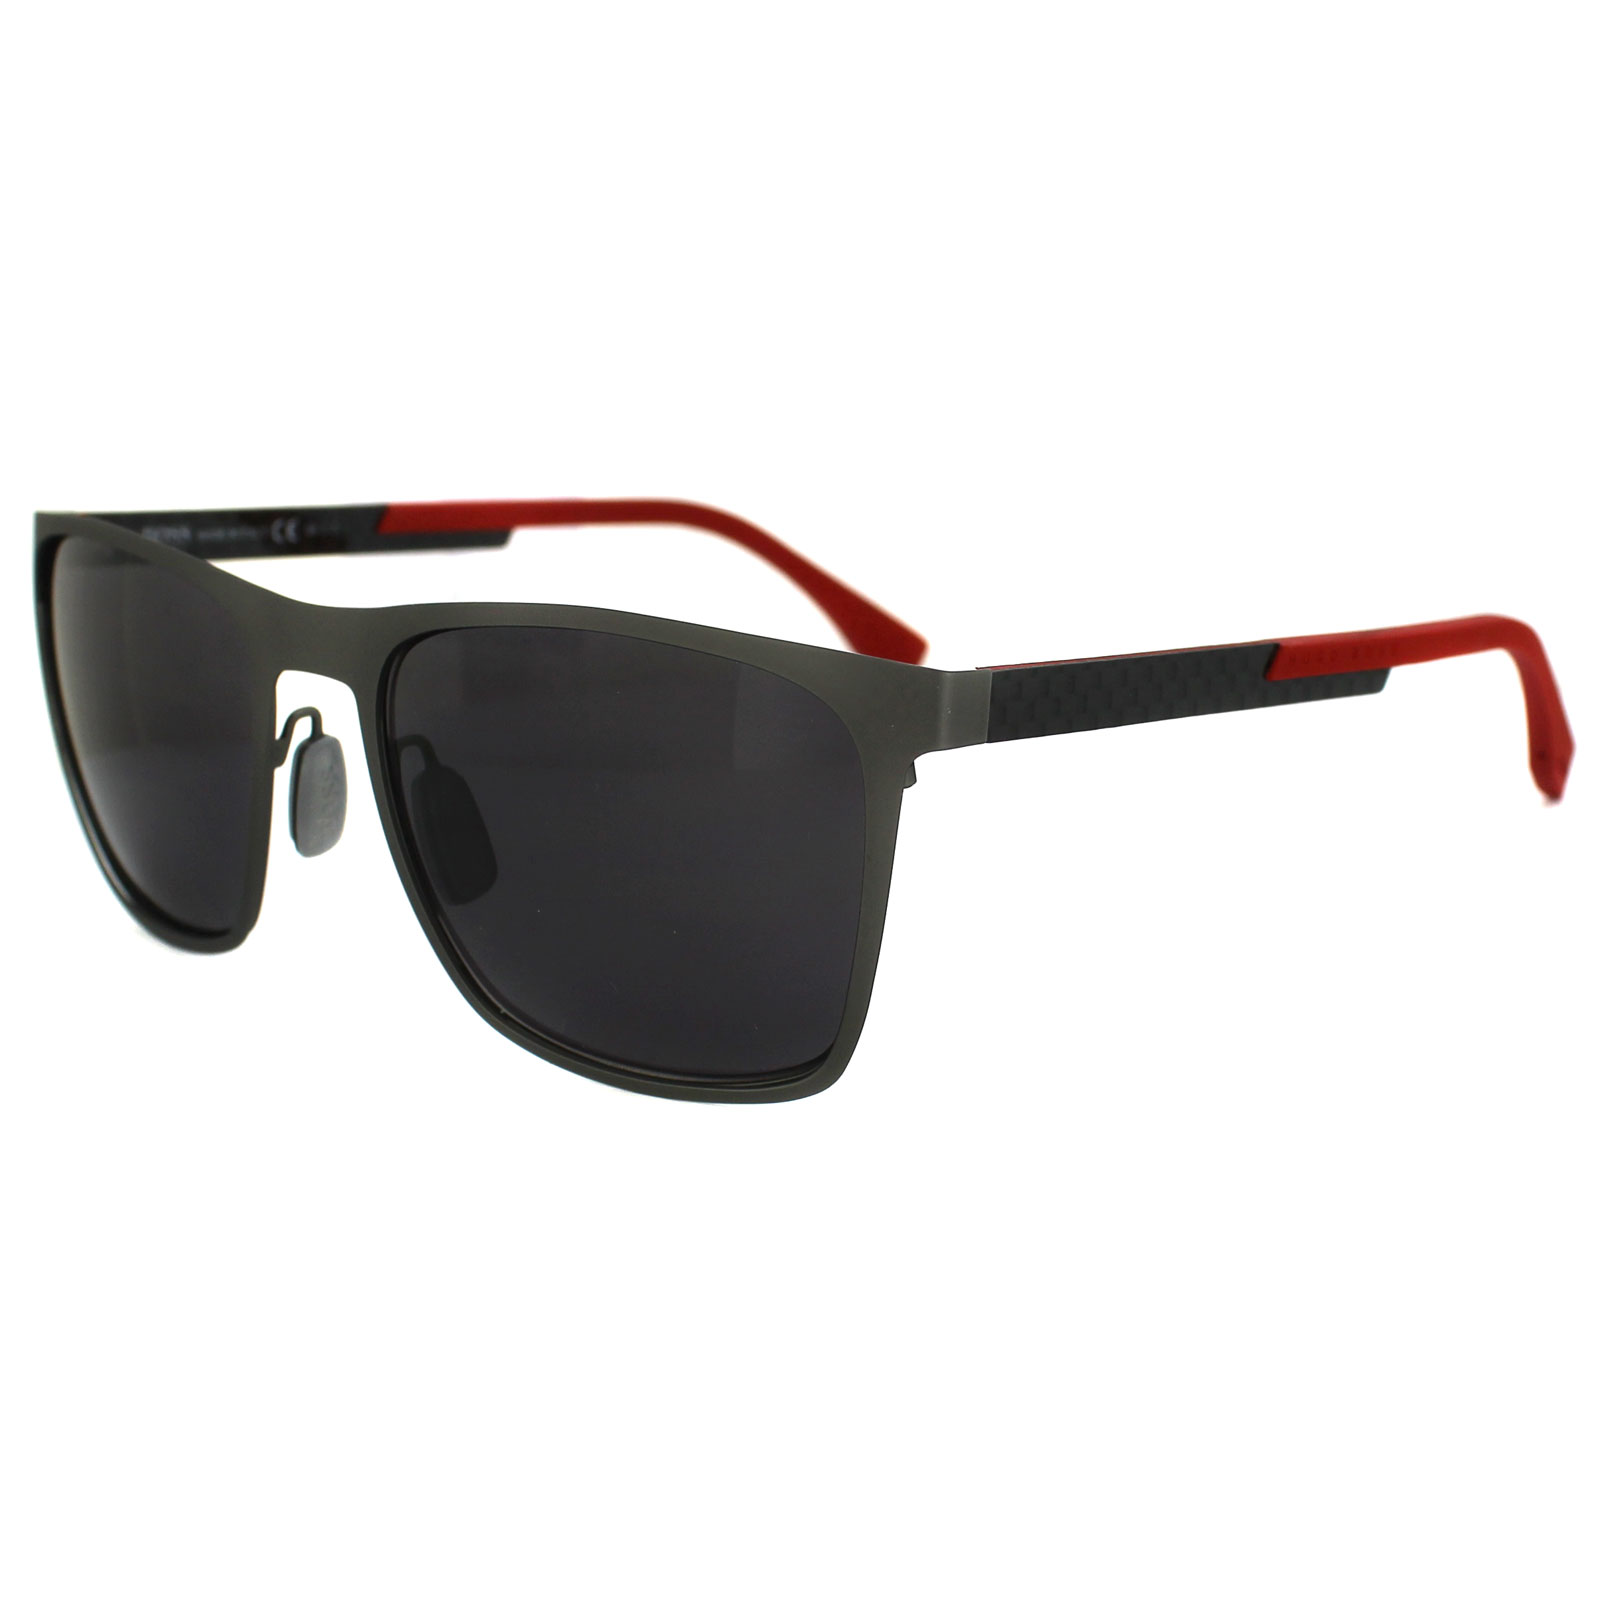 hugo boss sunglasses  Cheap Hugo Boss 0732 Sunglasses - Discounted Sunglasses